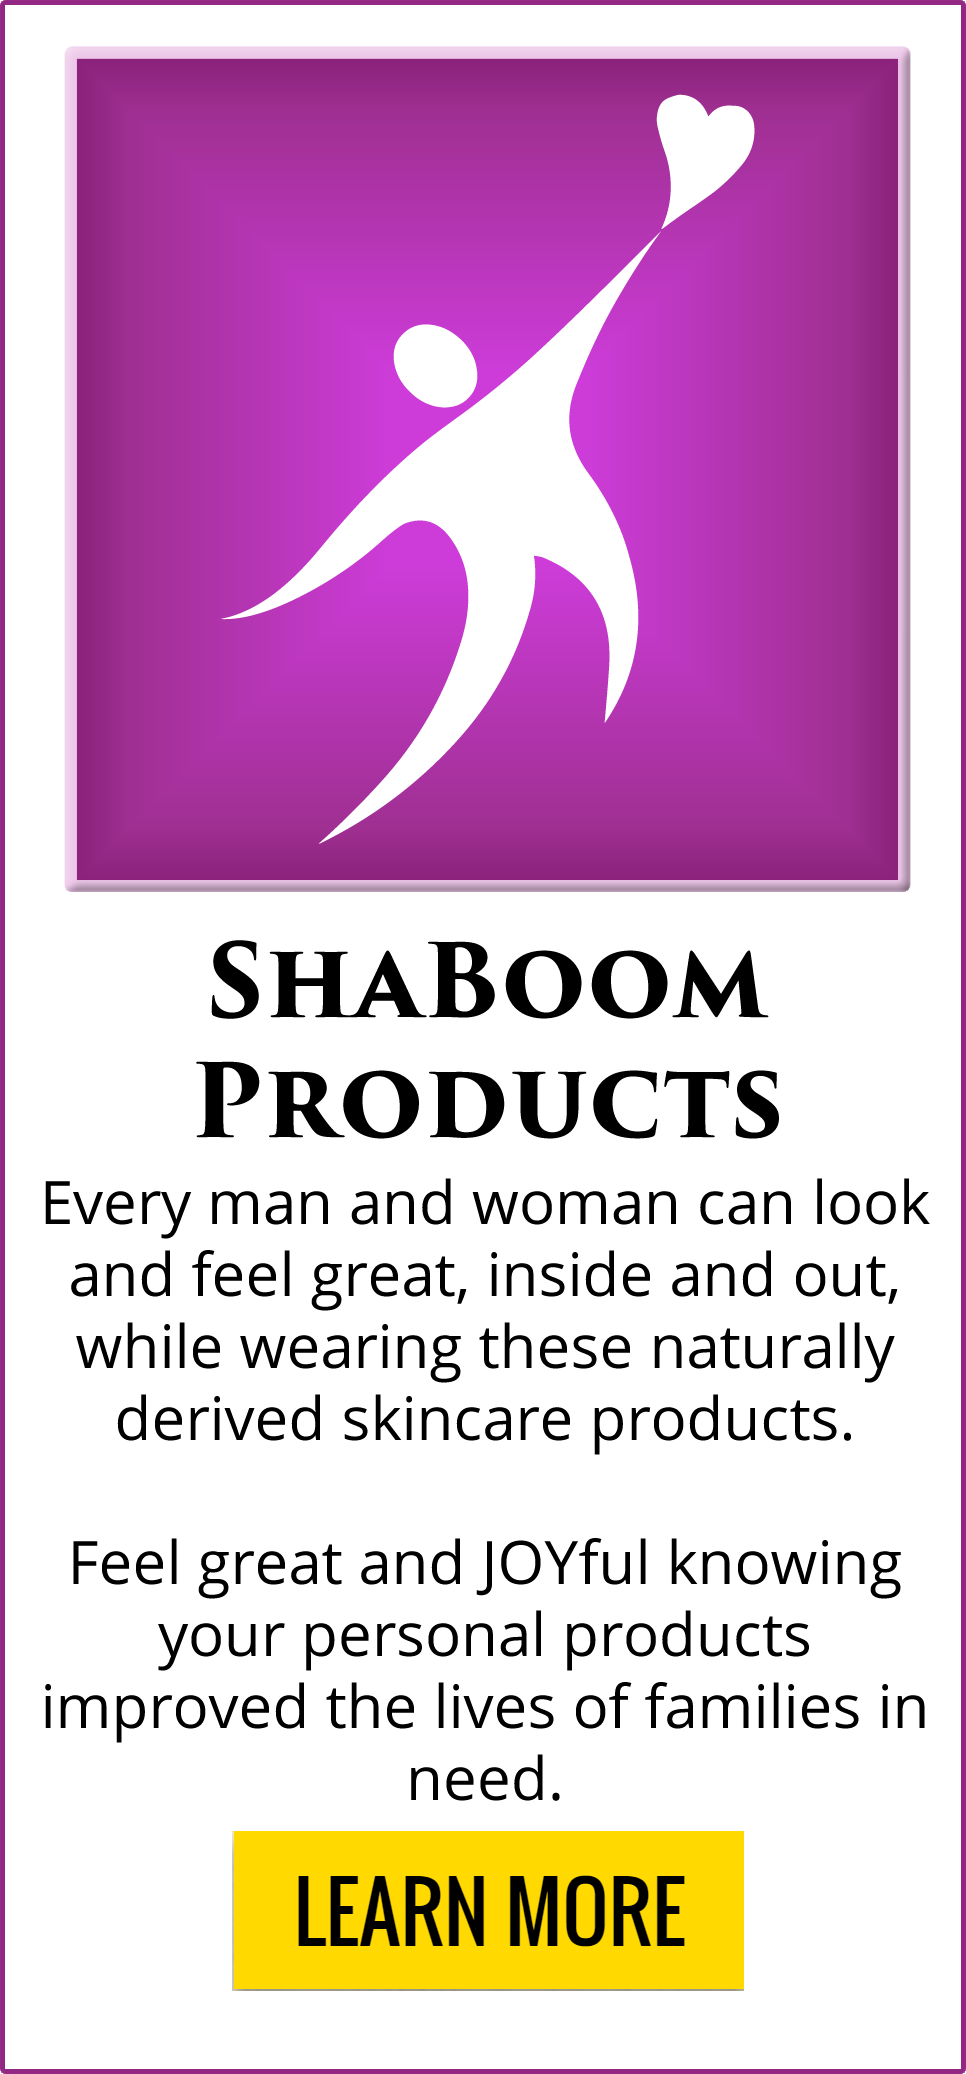 ShaBoom Beauty Products created to help OneMama and Fighting for the JOY of Others!